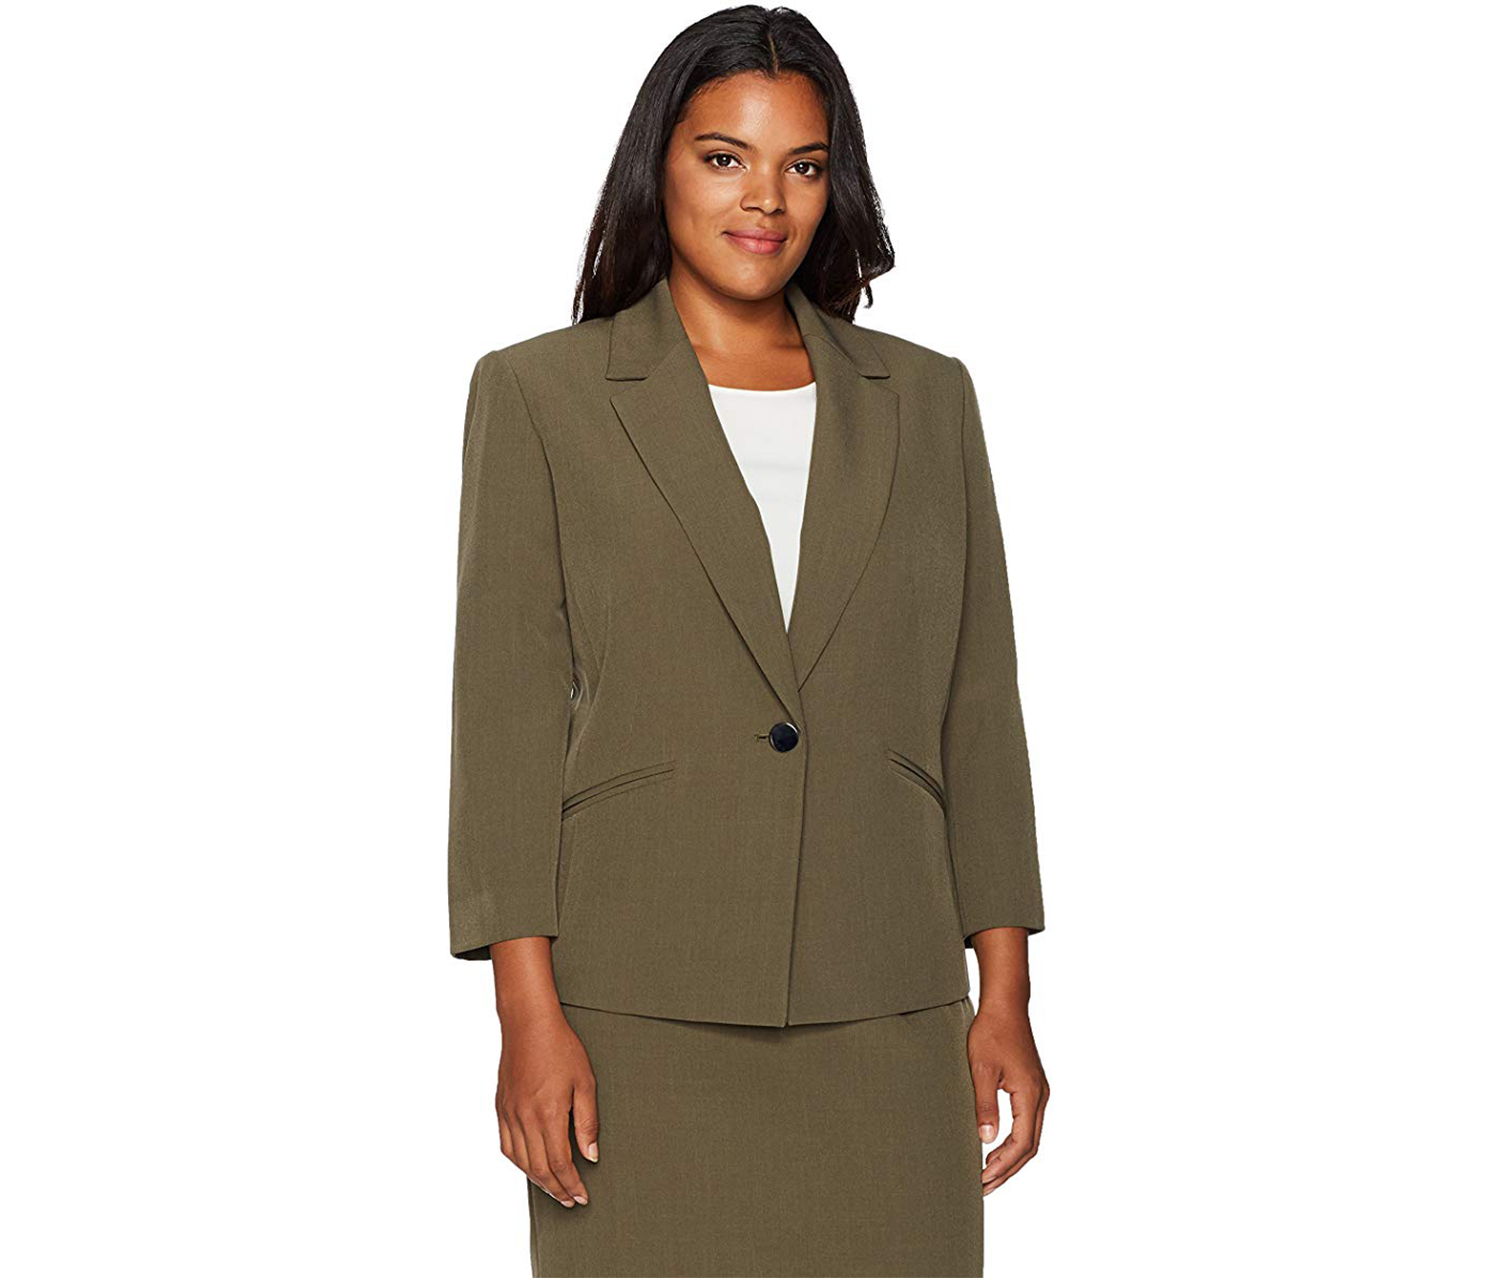 Kasper Women's Plus Size 1 Button Solid Jacket, Olive